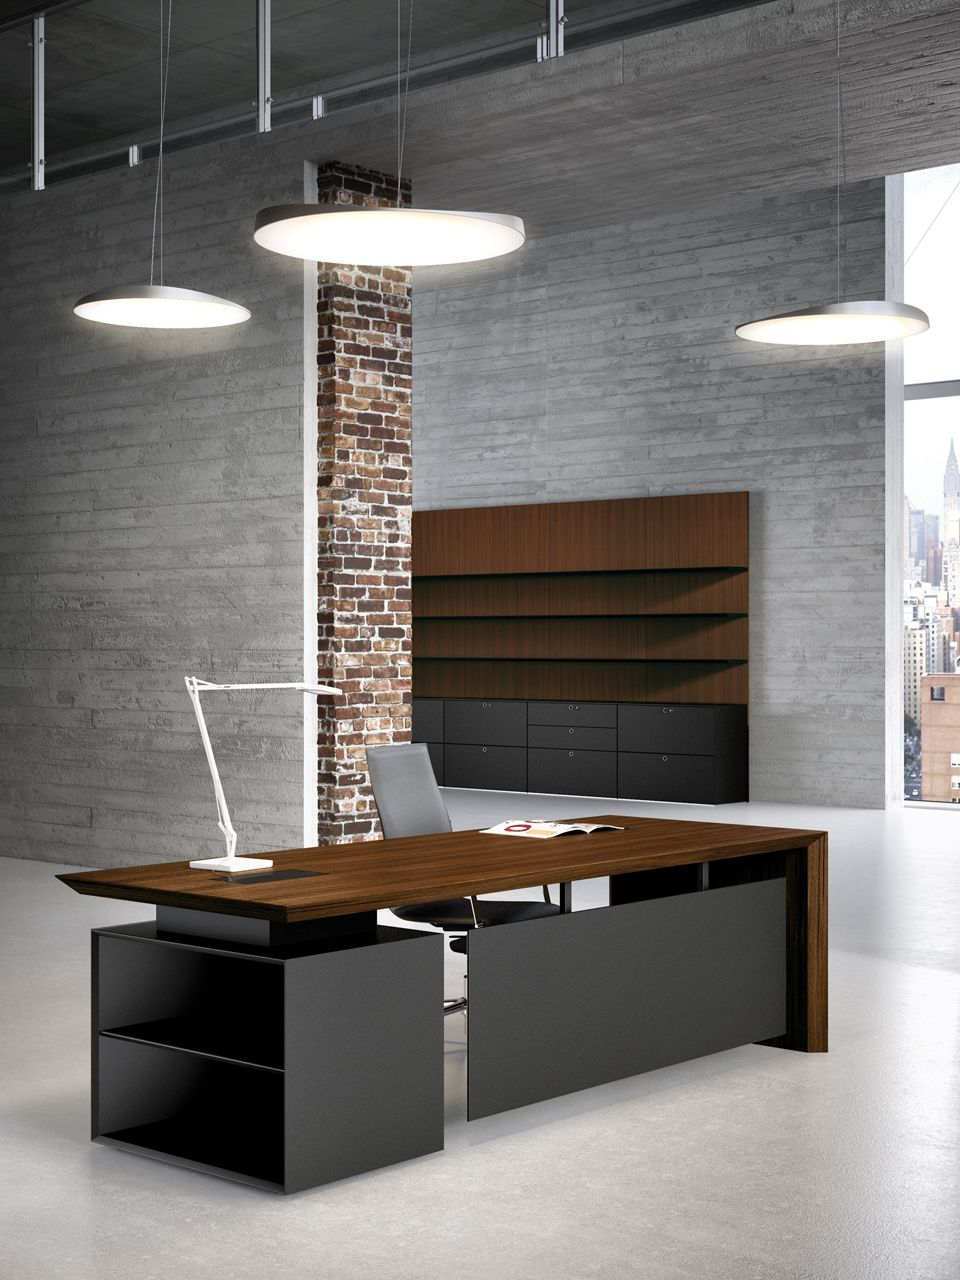 Best 25+ Executive Office Desk Ideas On Pinterest | Executive Office,  Corporate Office Design And Glass Office